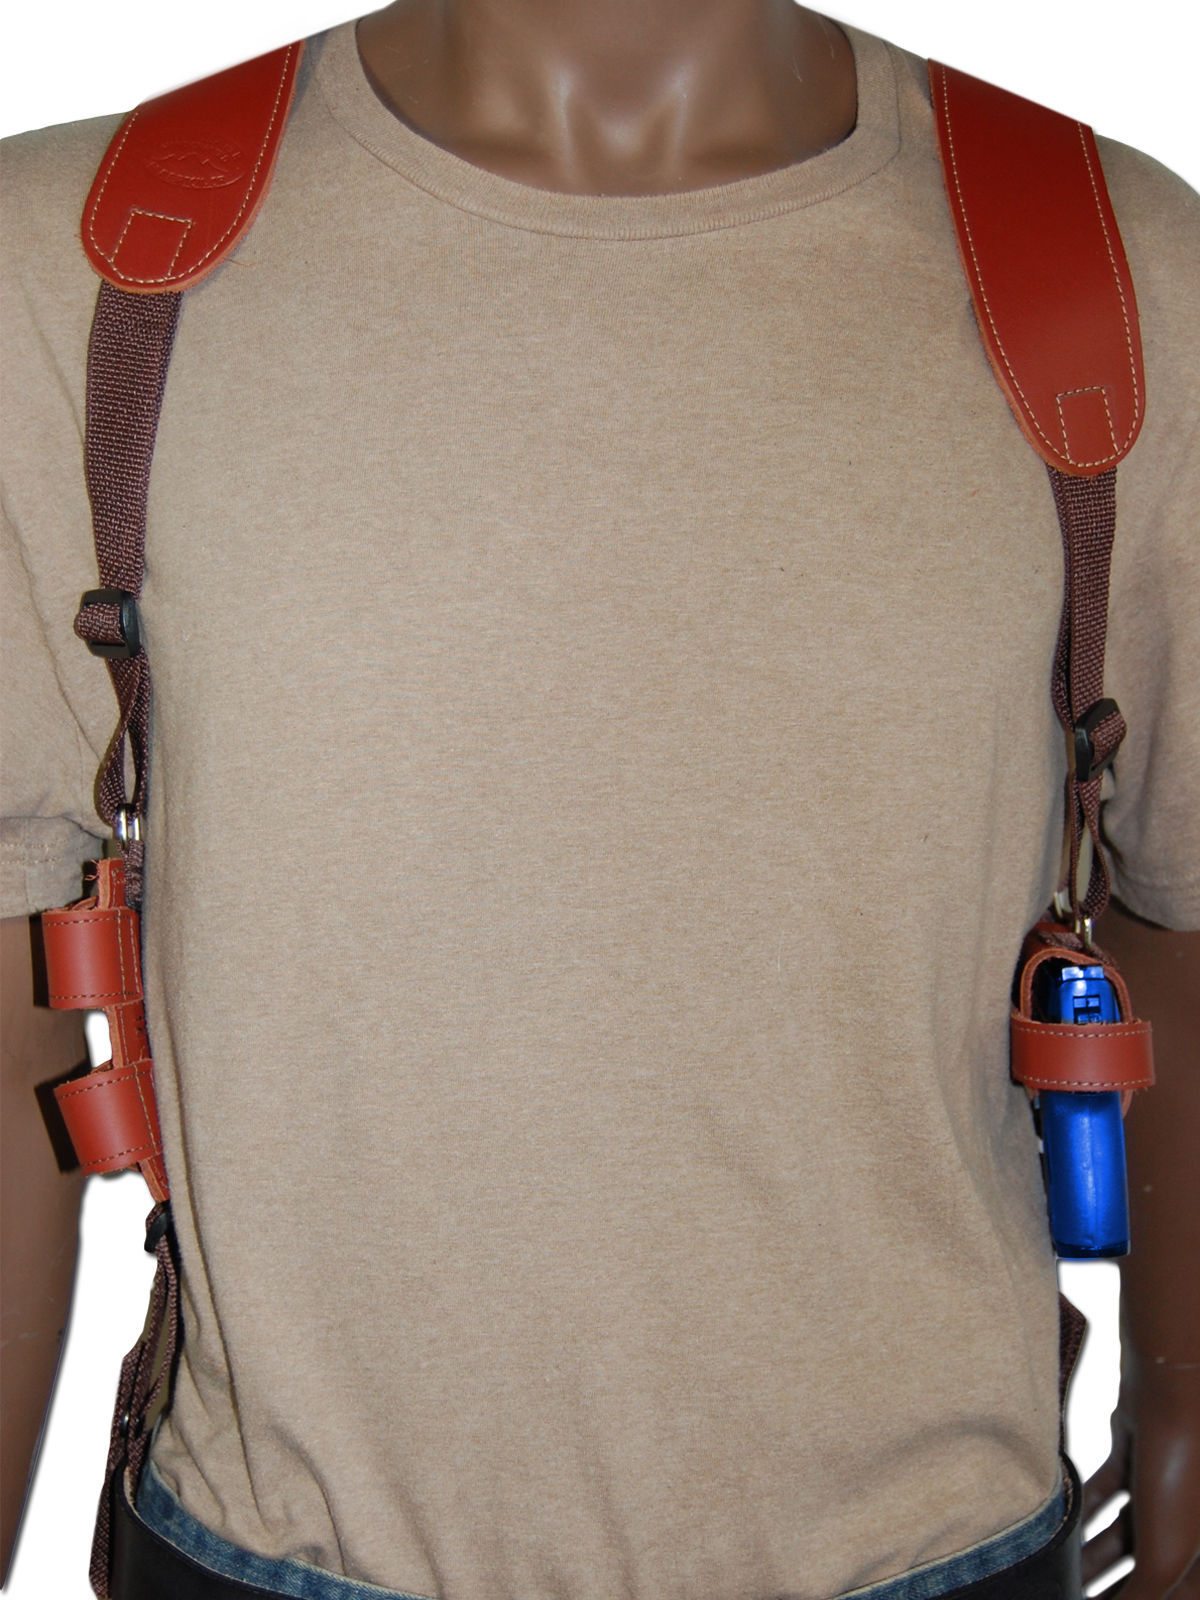 NEW Burgundy Leather Shoulder Holster w/Dbl Mag Pouch Raven Jennings Mini-Pocket